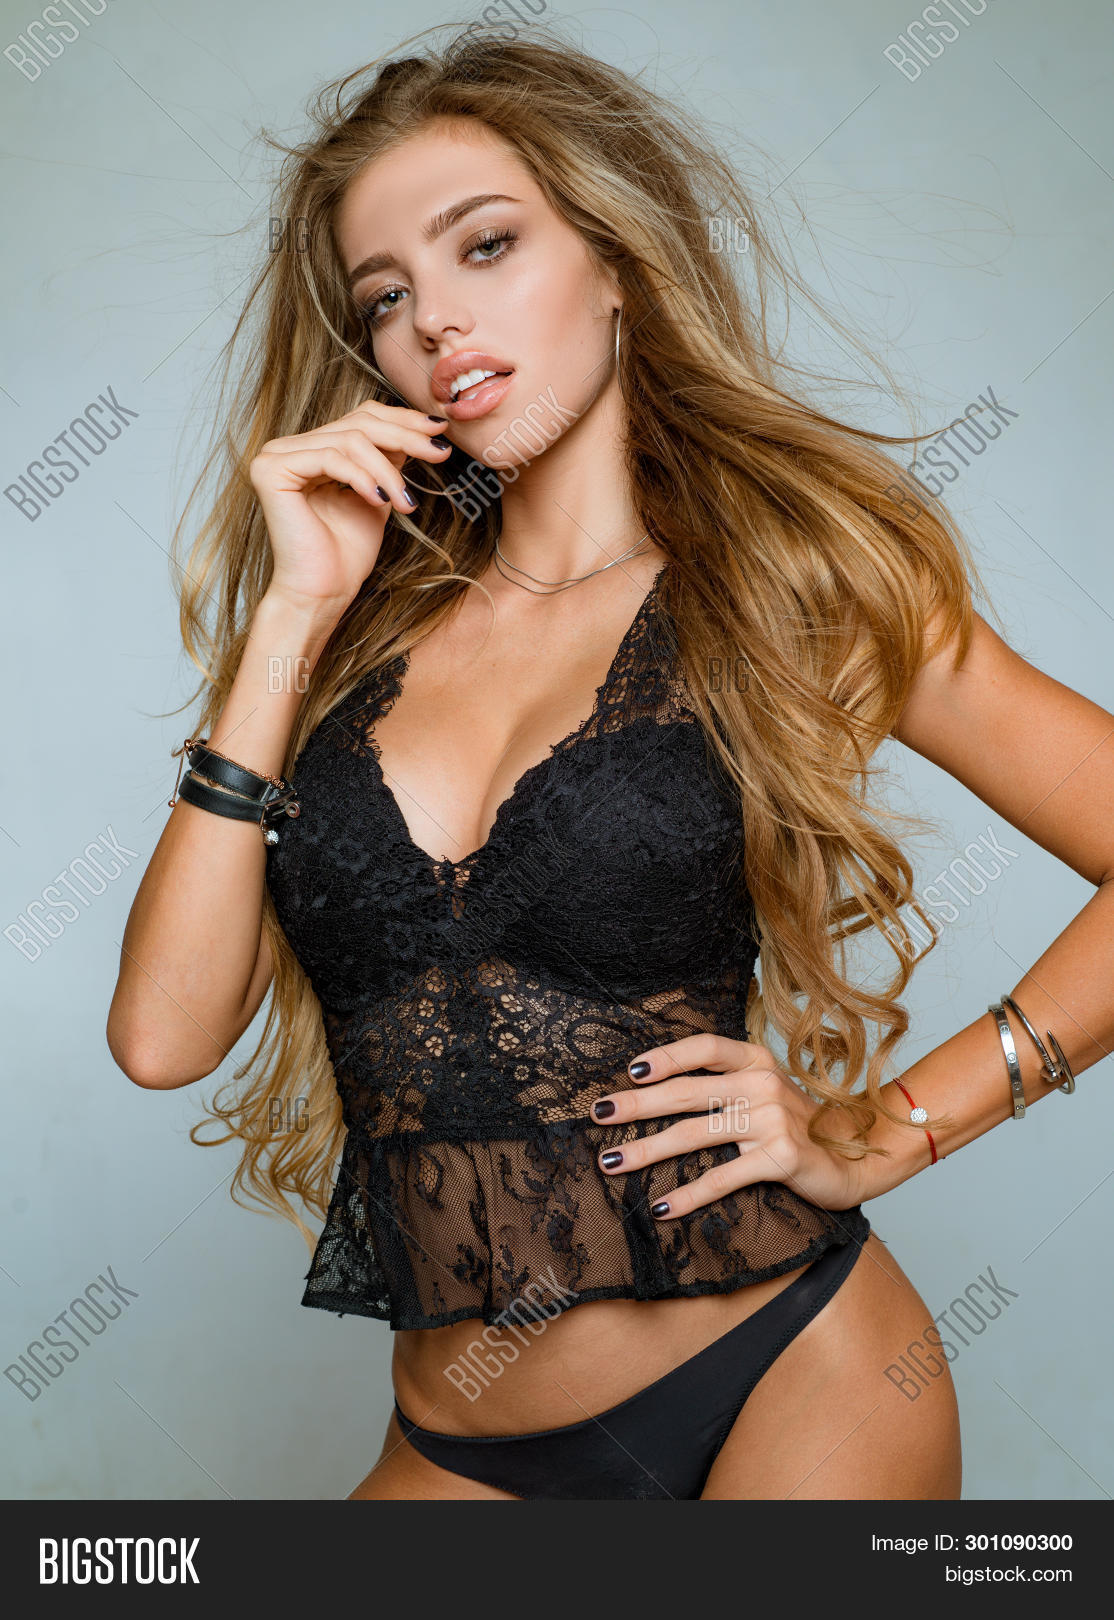 adult,attractive,beautiful,beauty,black,body,curly,curves,desirable,desire,dream,elegance,erotic,eyes,face,fashion,female,fit,girl,girlfriend,hair,happy,healthy,human,lace,lingerie,long,makeup,model,perfect,person,posing,pretty,salon,sensual,sexy,underwear,wear,wellness,white,woman,young,your